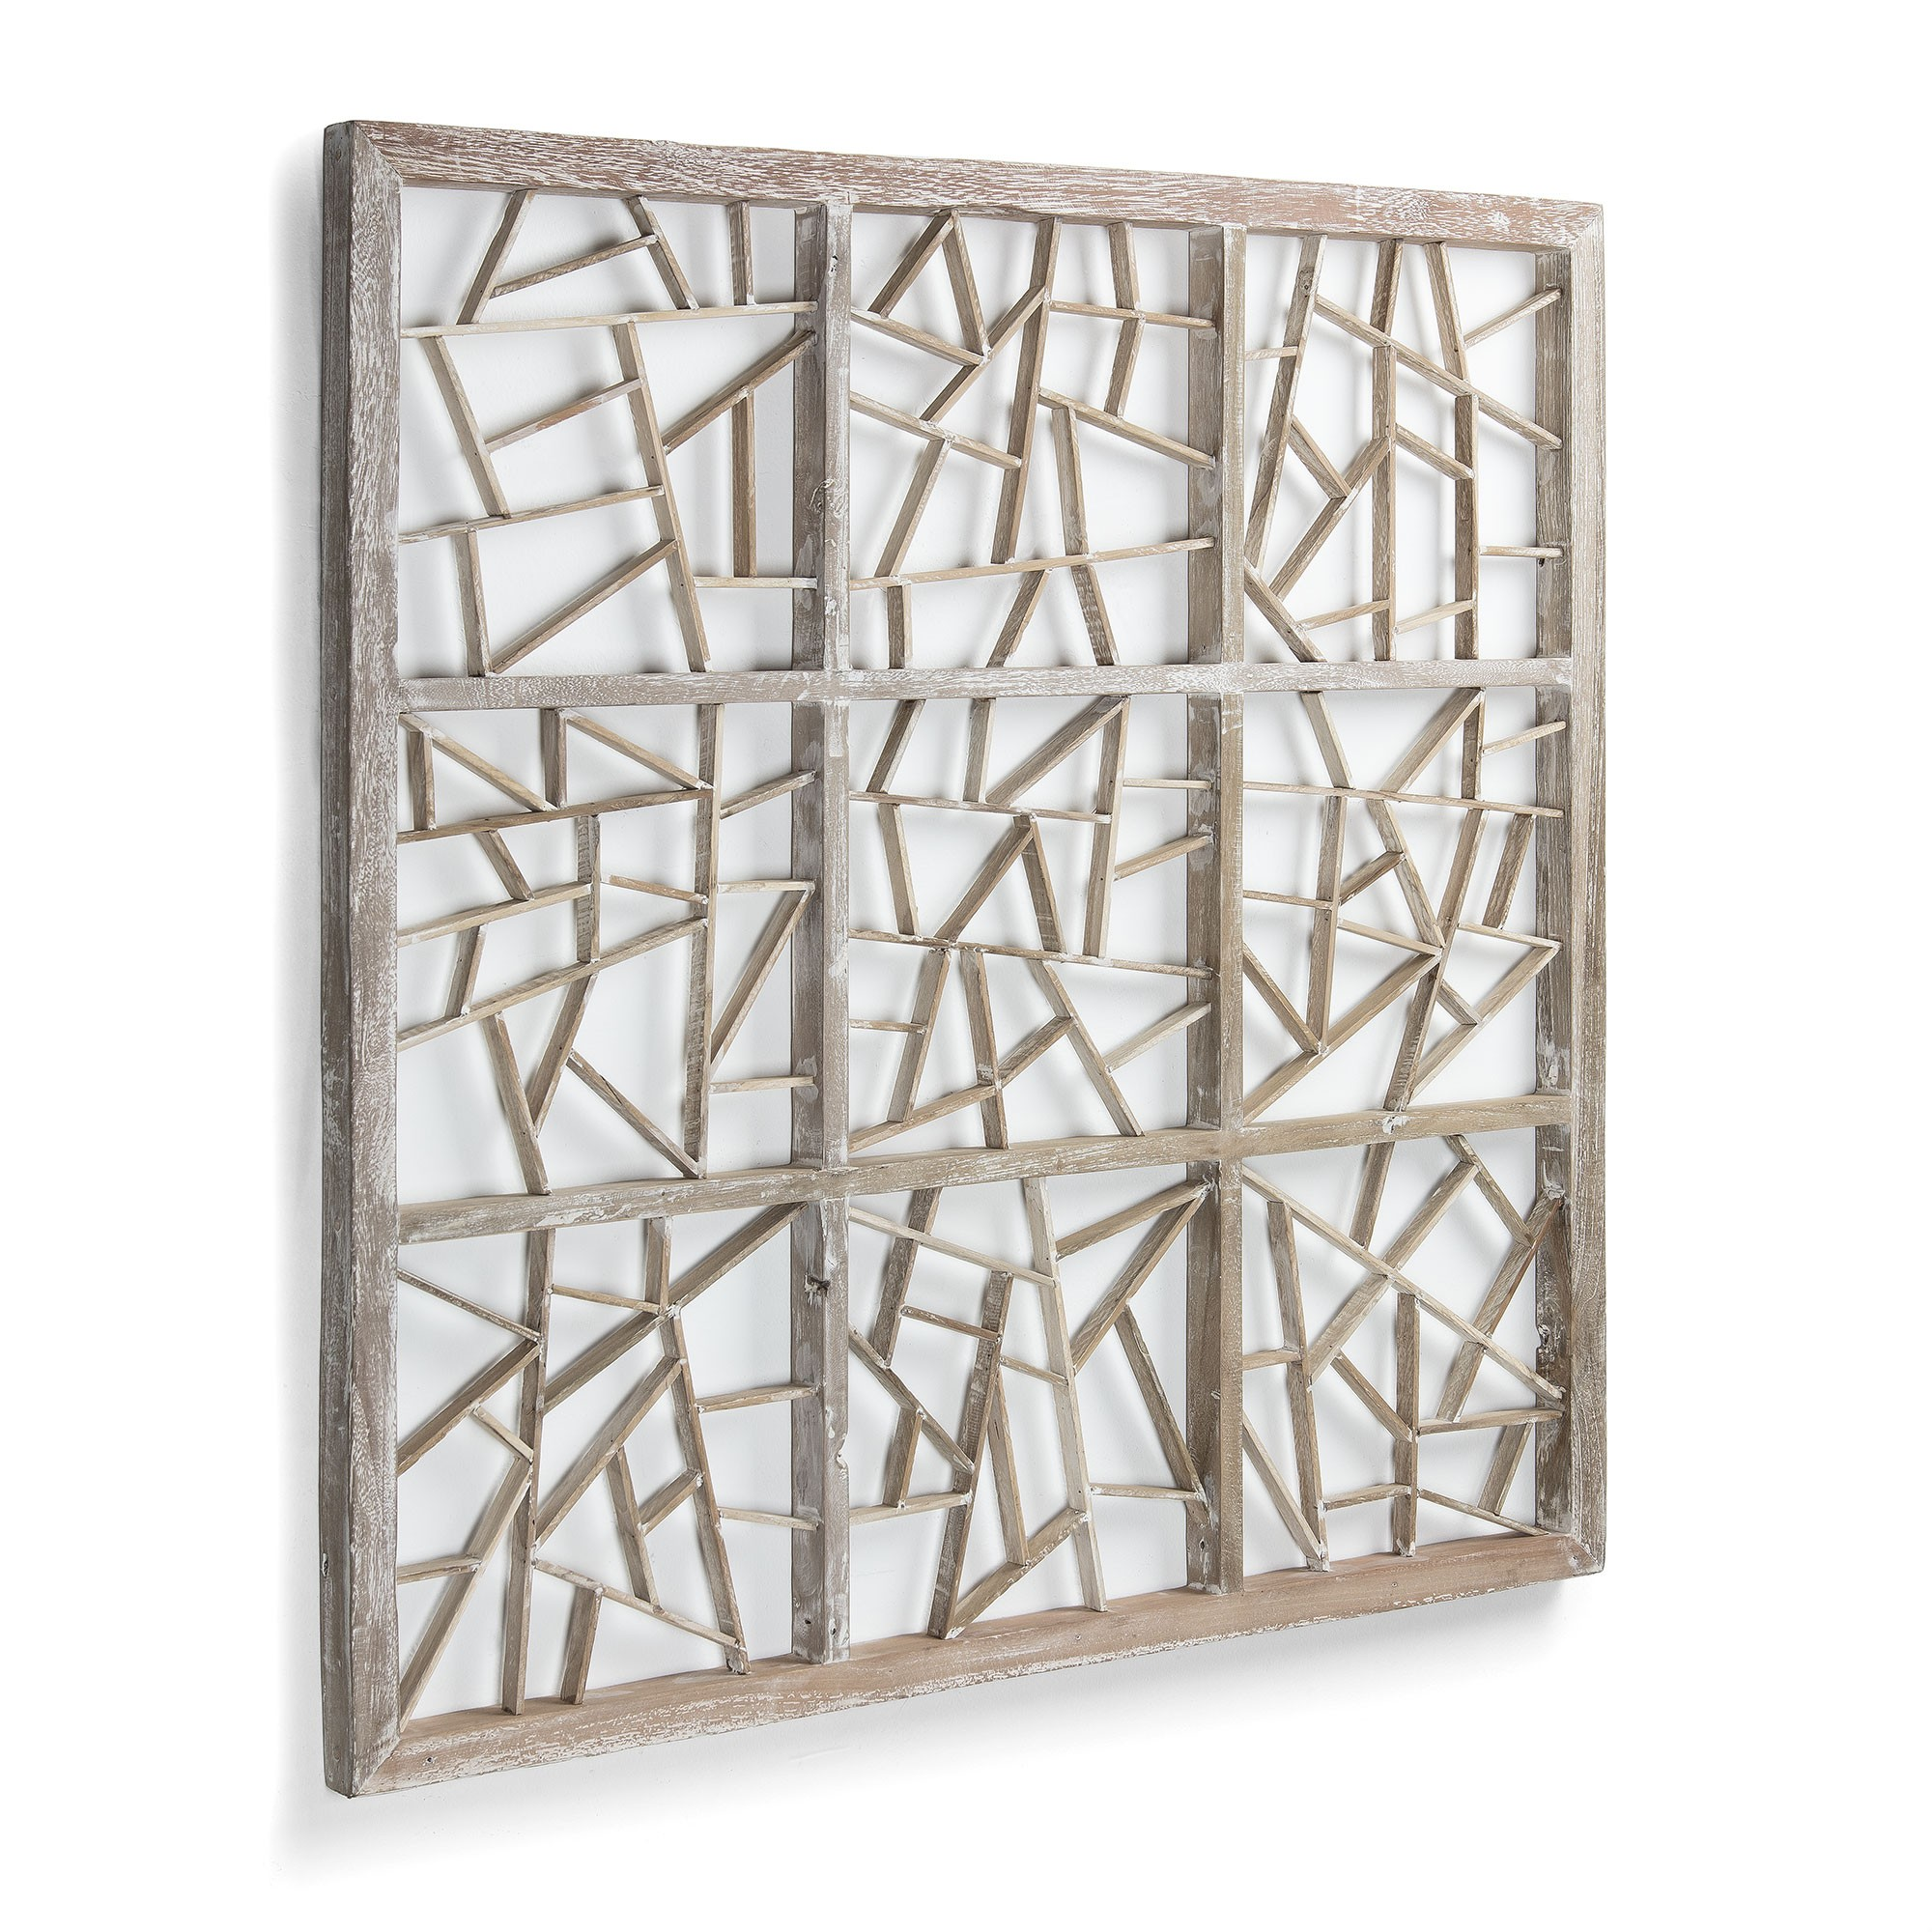 Evie Recycled Timber Wall Art, 100cm